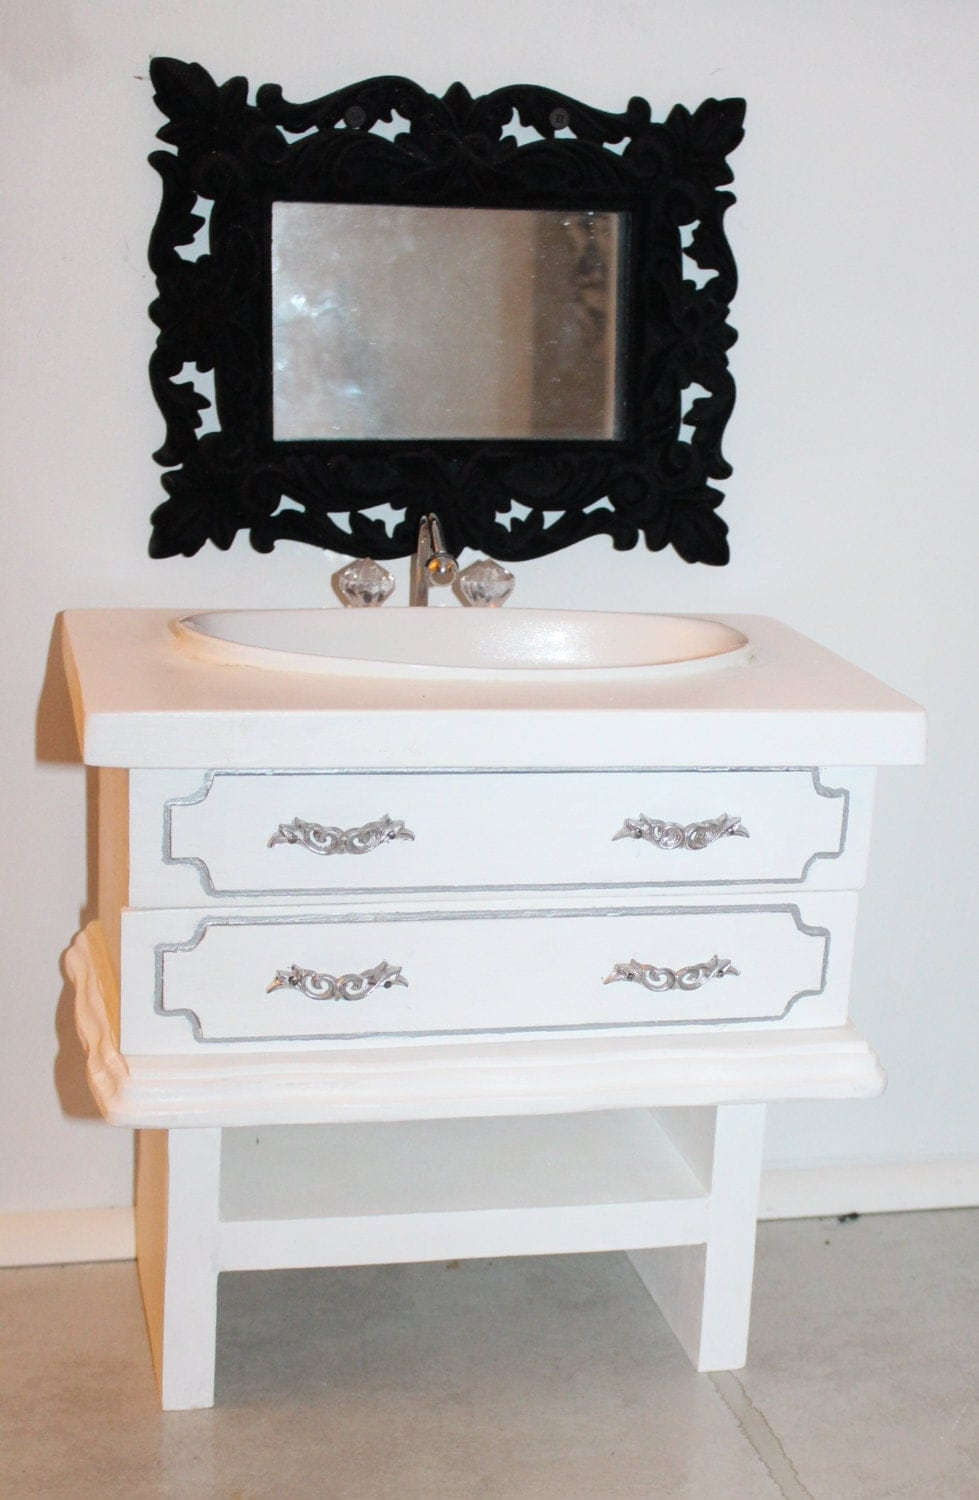 18 Inch Vanity With Sink : White Bathroom Sink Vanity Handmade 18 inch by MadisDollHouse